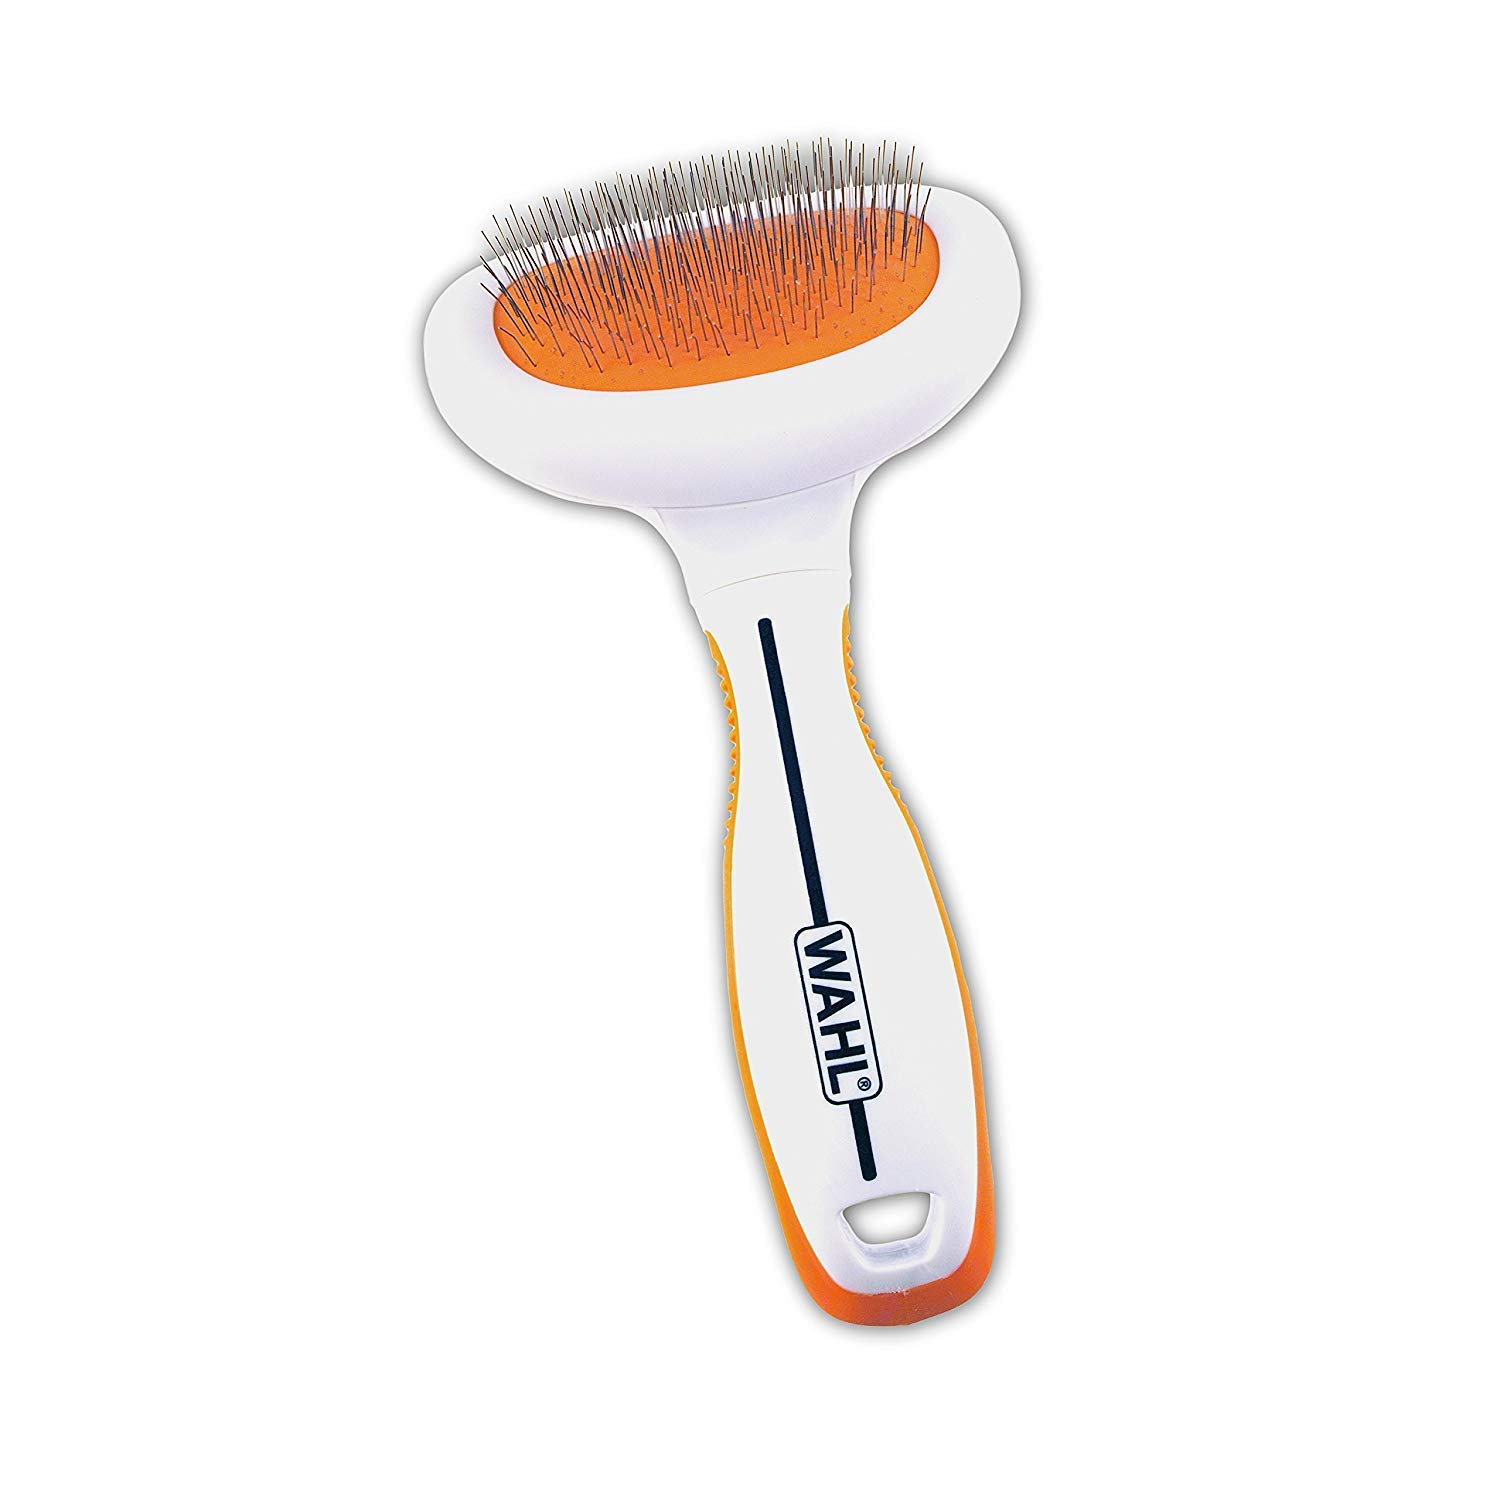 Wahl Premium Small Slicker Brush with Ergonomic Rubber Grips for Comfortable Brushing of Small Dogs & Cats - Model 858406